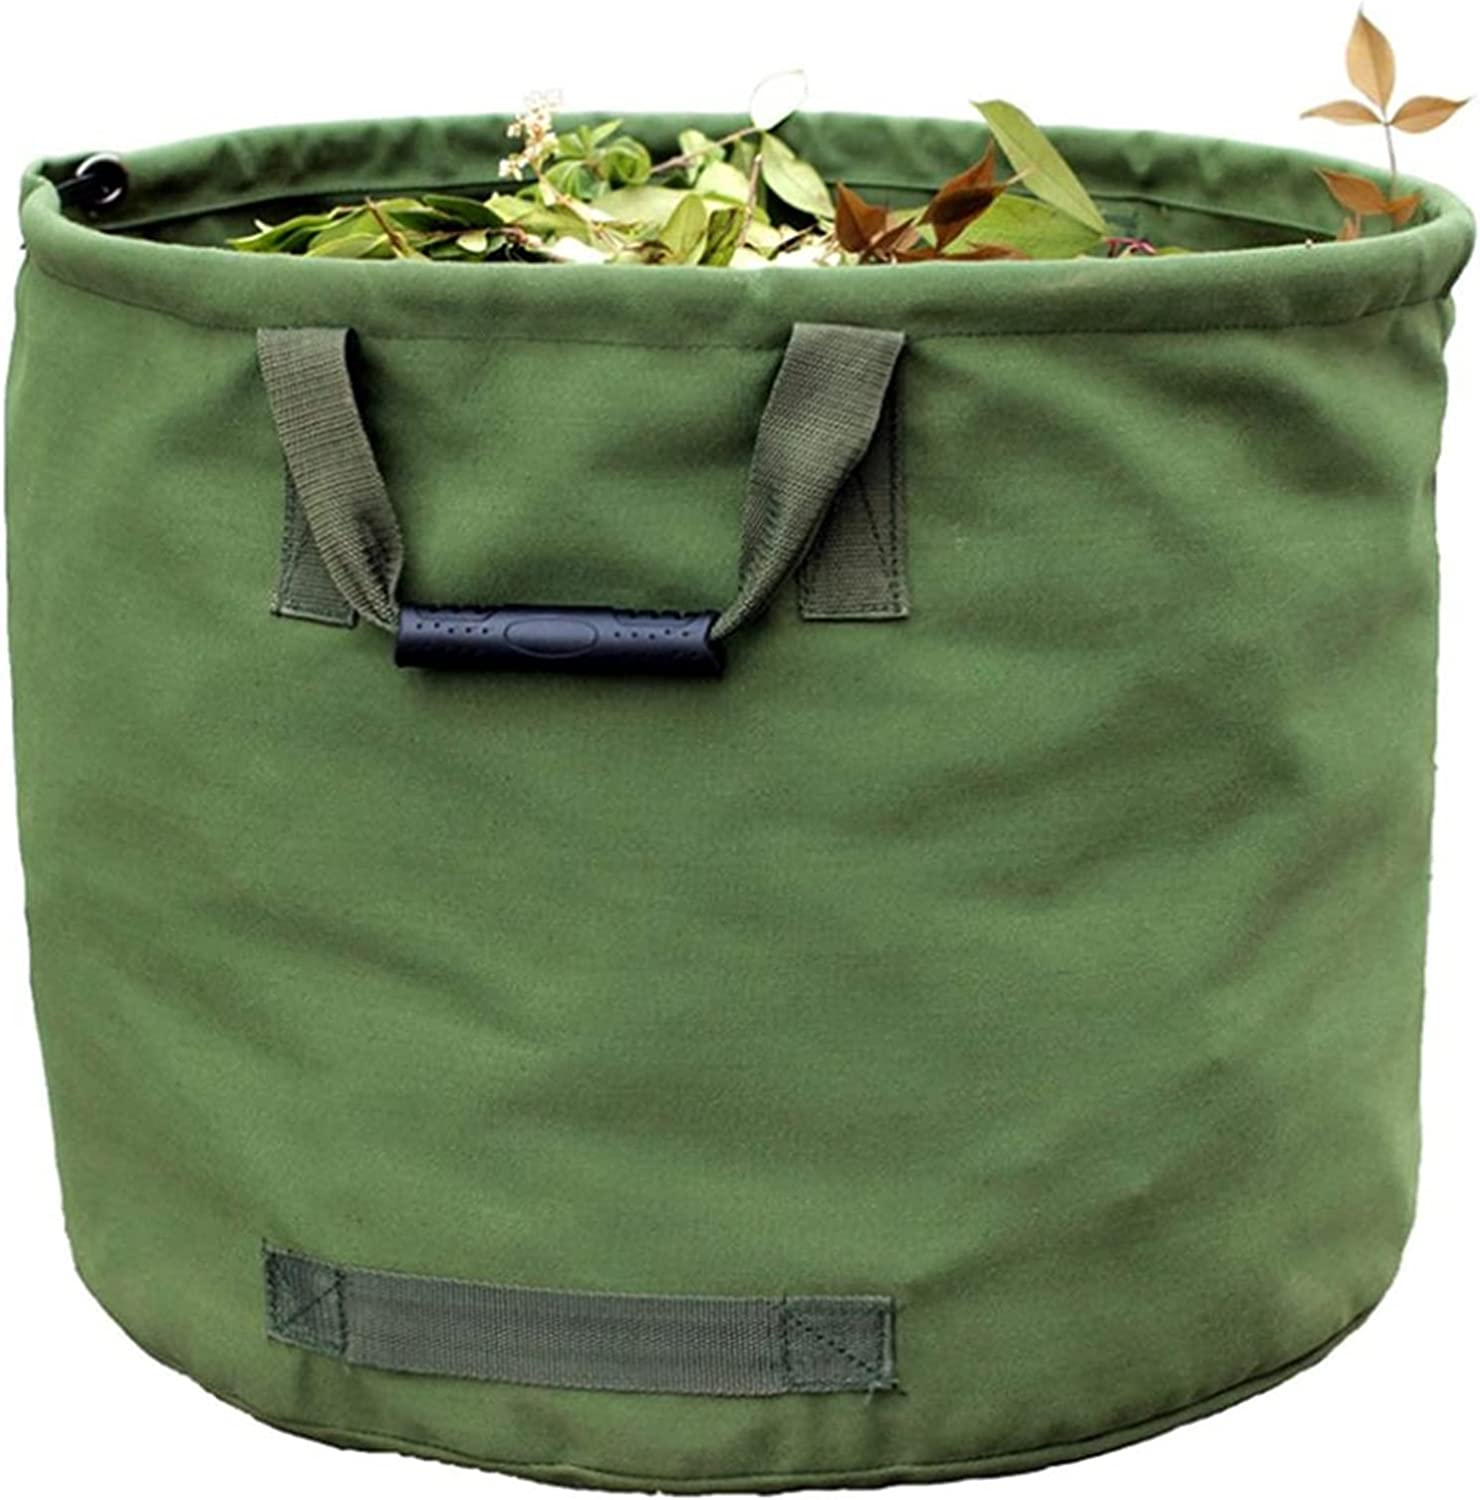 RWEAONT 600D Soldering Miami Mall Waterproof Oxford Cloth Garden Bag Leaf for Storage